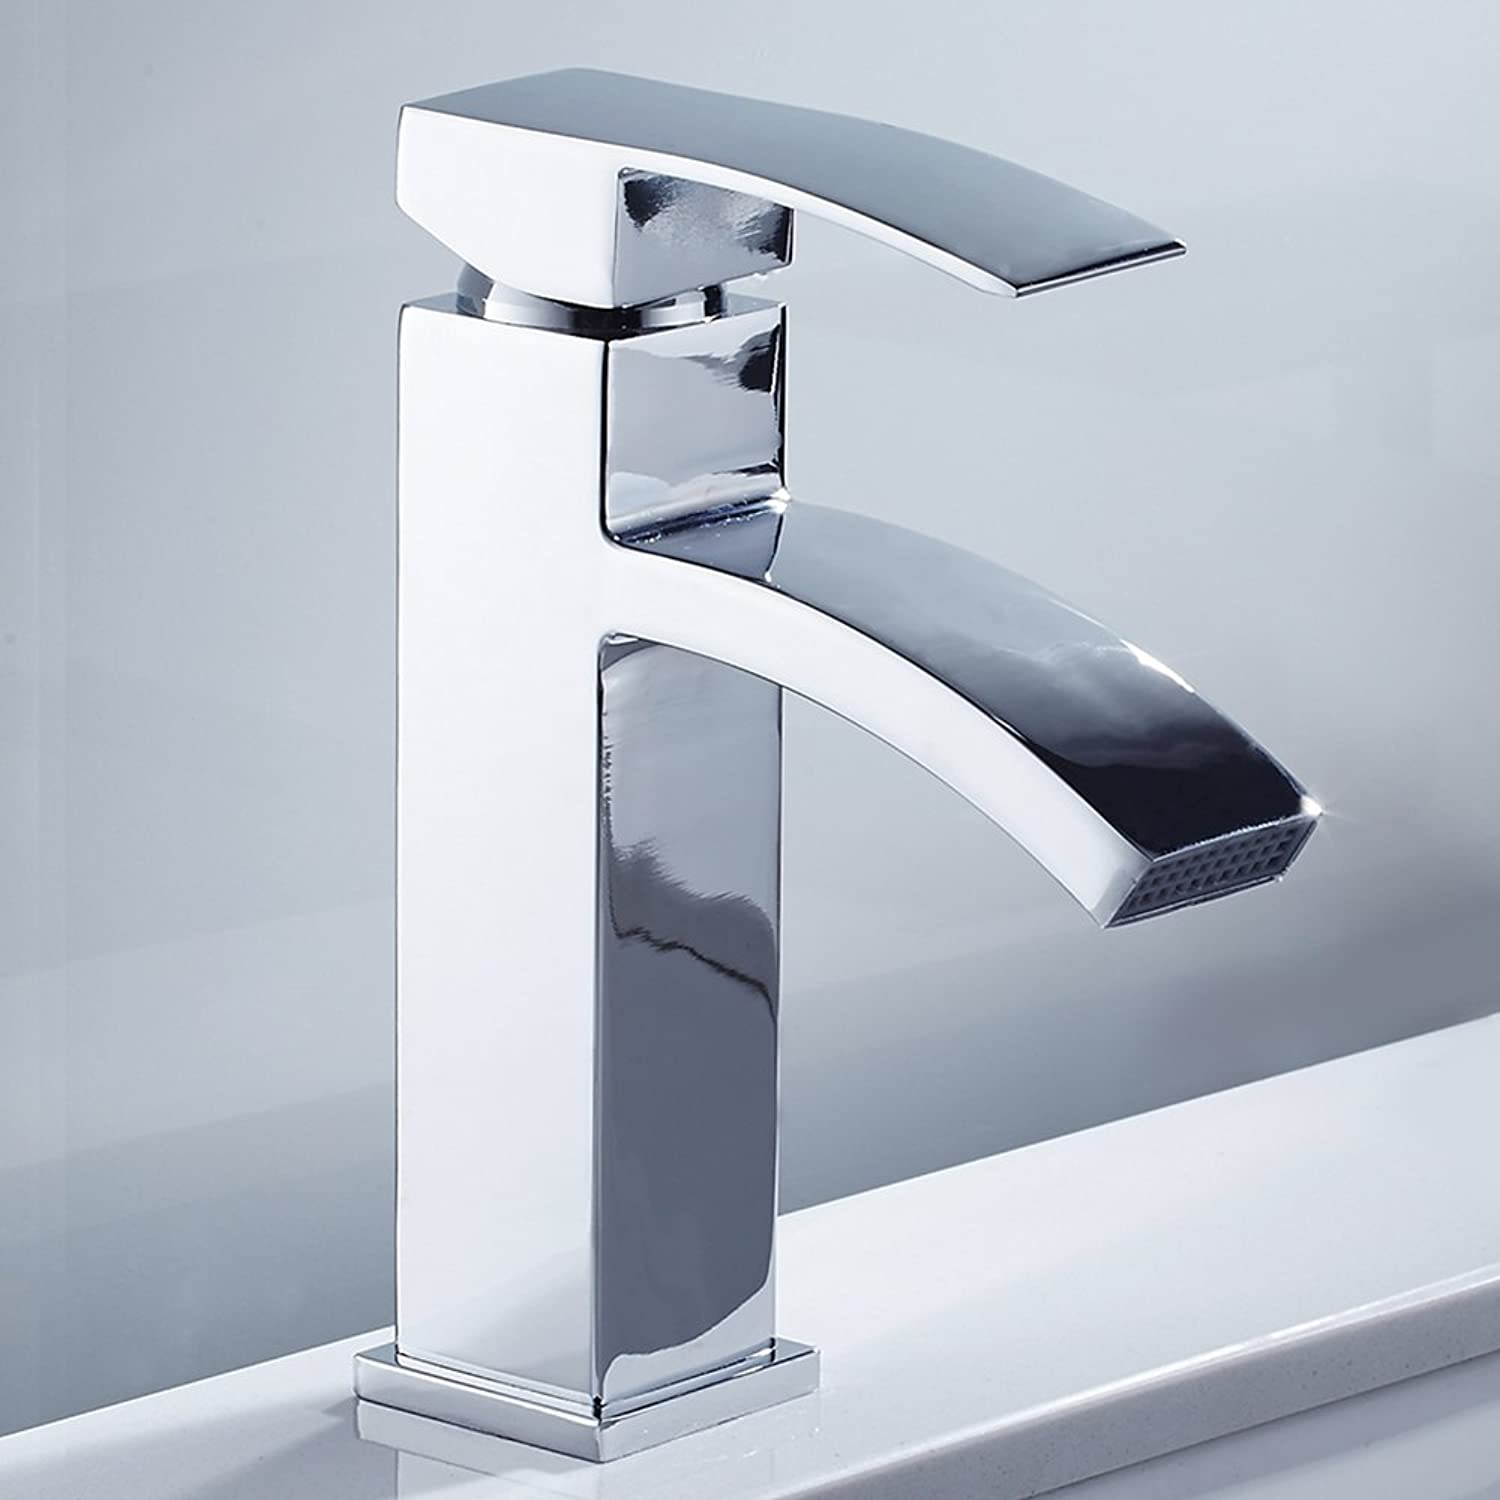 Waterfall Basin Sink Taps Mixer Tap Monobloc Single Lever Mixer Faucet Chrome